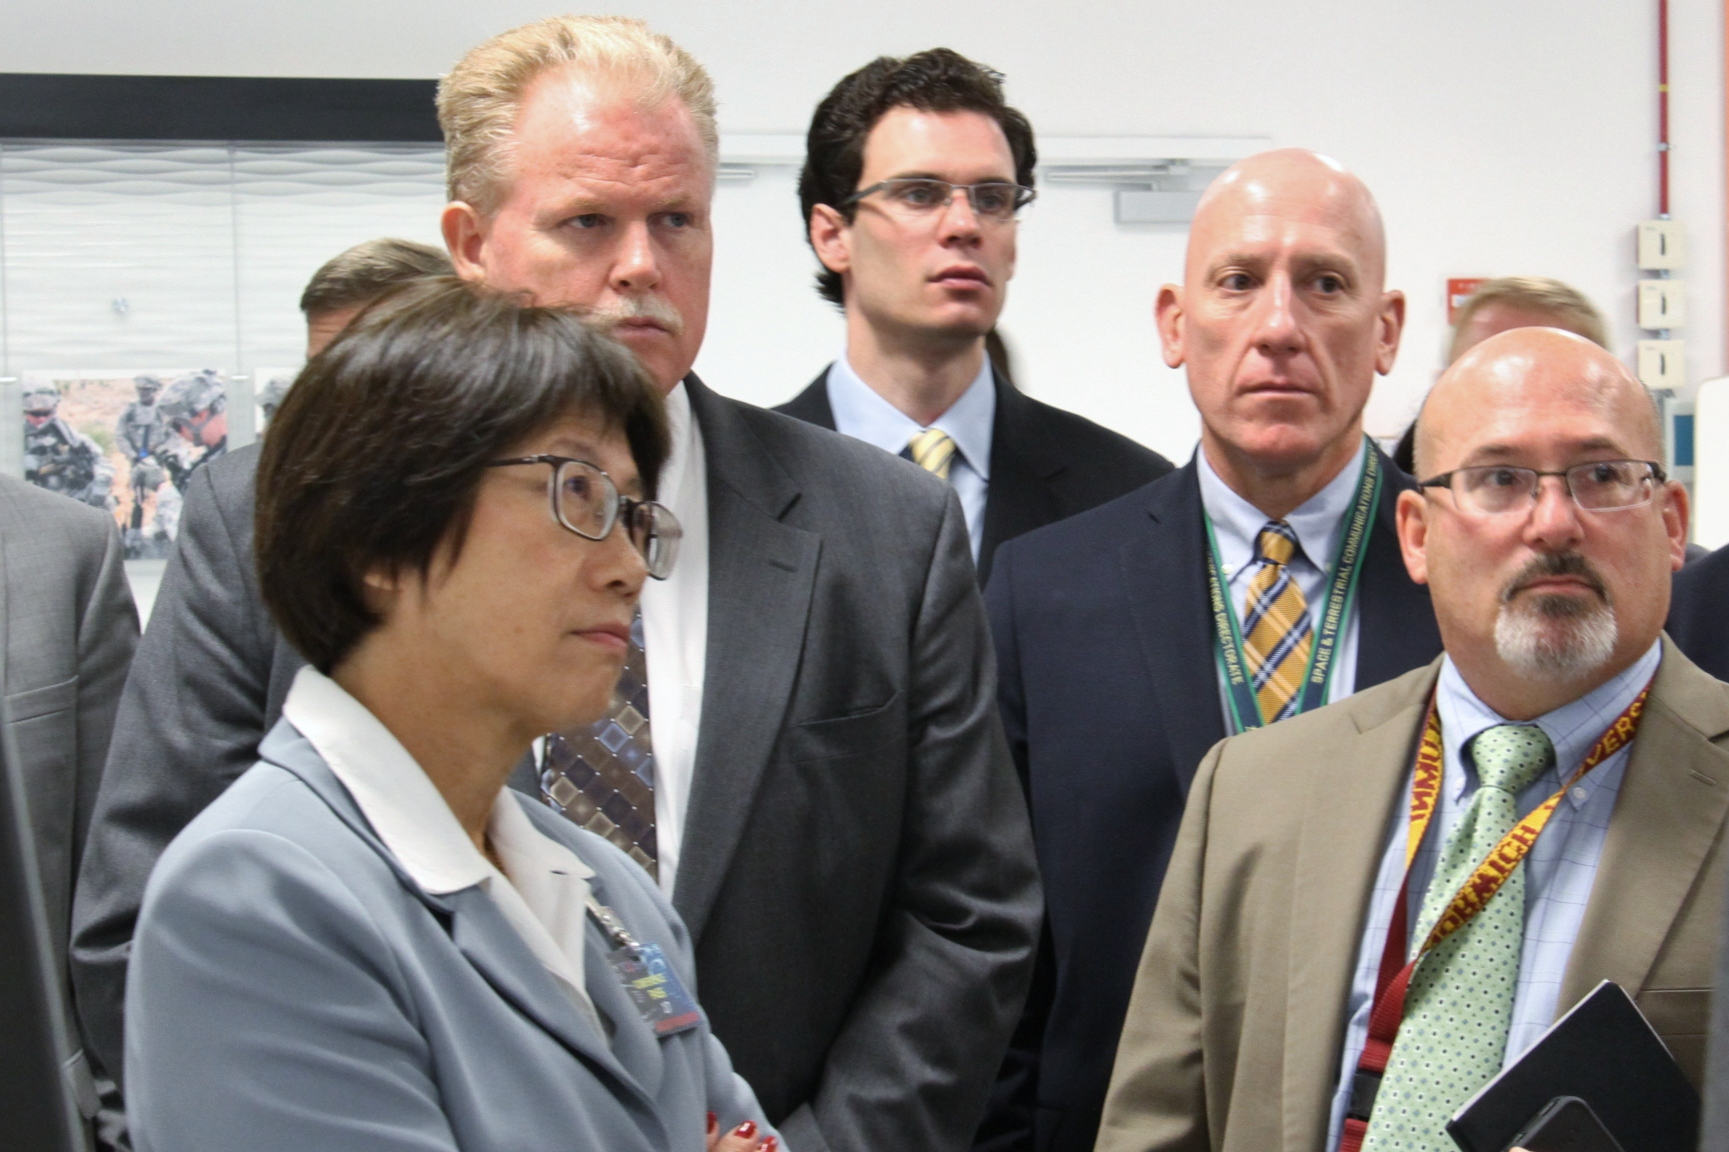 The Hon. Heidi Shyu, the  ASA(ALT), toured a CERDEC lab along with CERDEC Director Henry Muller, CERDEC S&TCD Director John Willison, and CECOM Deputy Director Gary Martin.